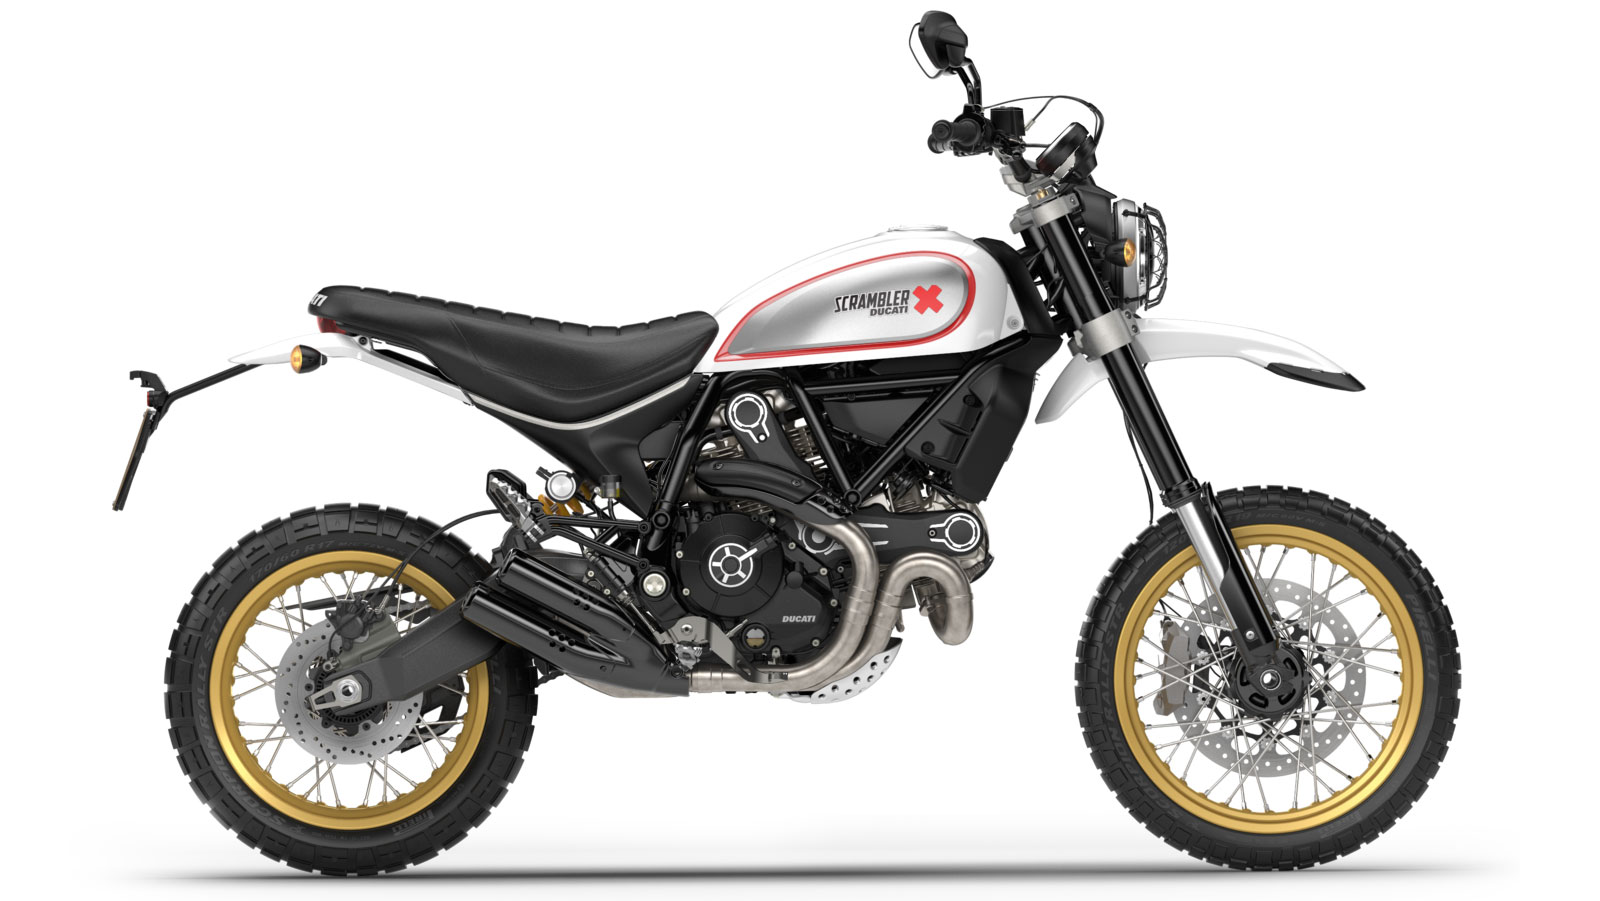 ducati scrambler desert sled for sale in preston. Black Bedroom Furniture Sets. Home Design Ideas